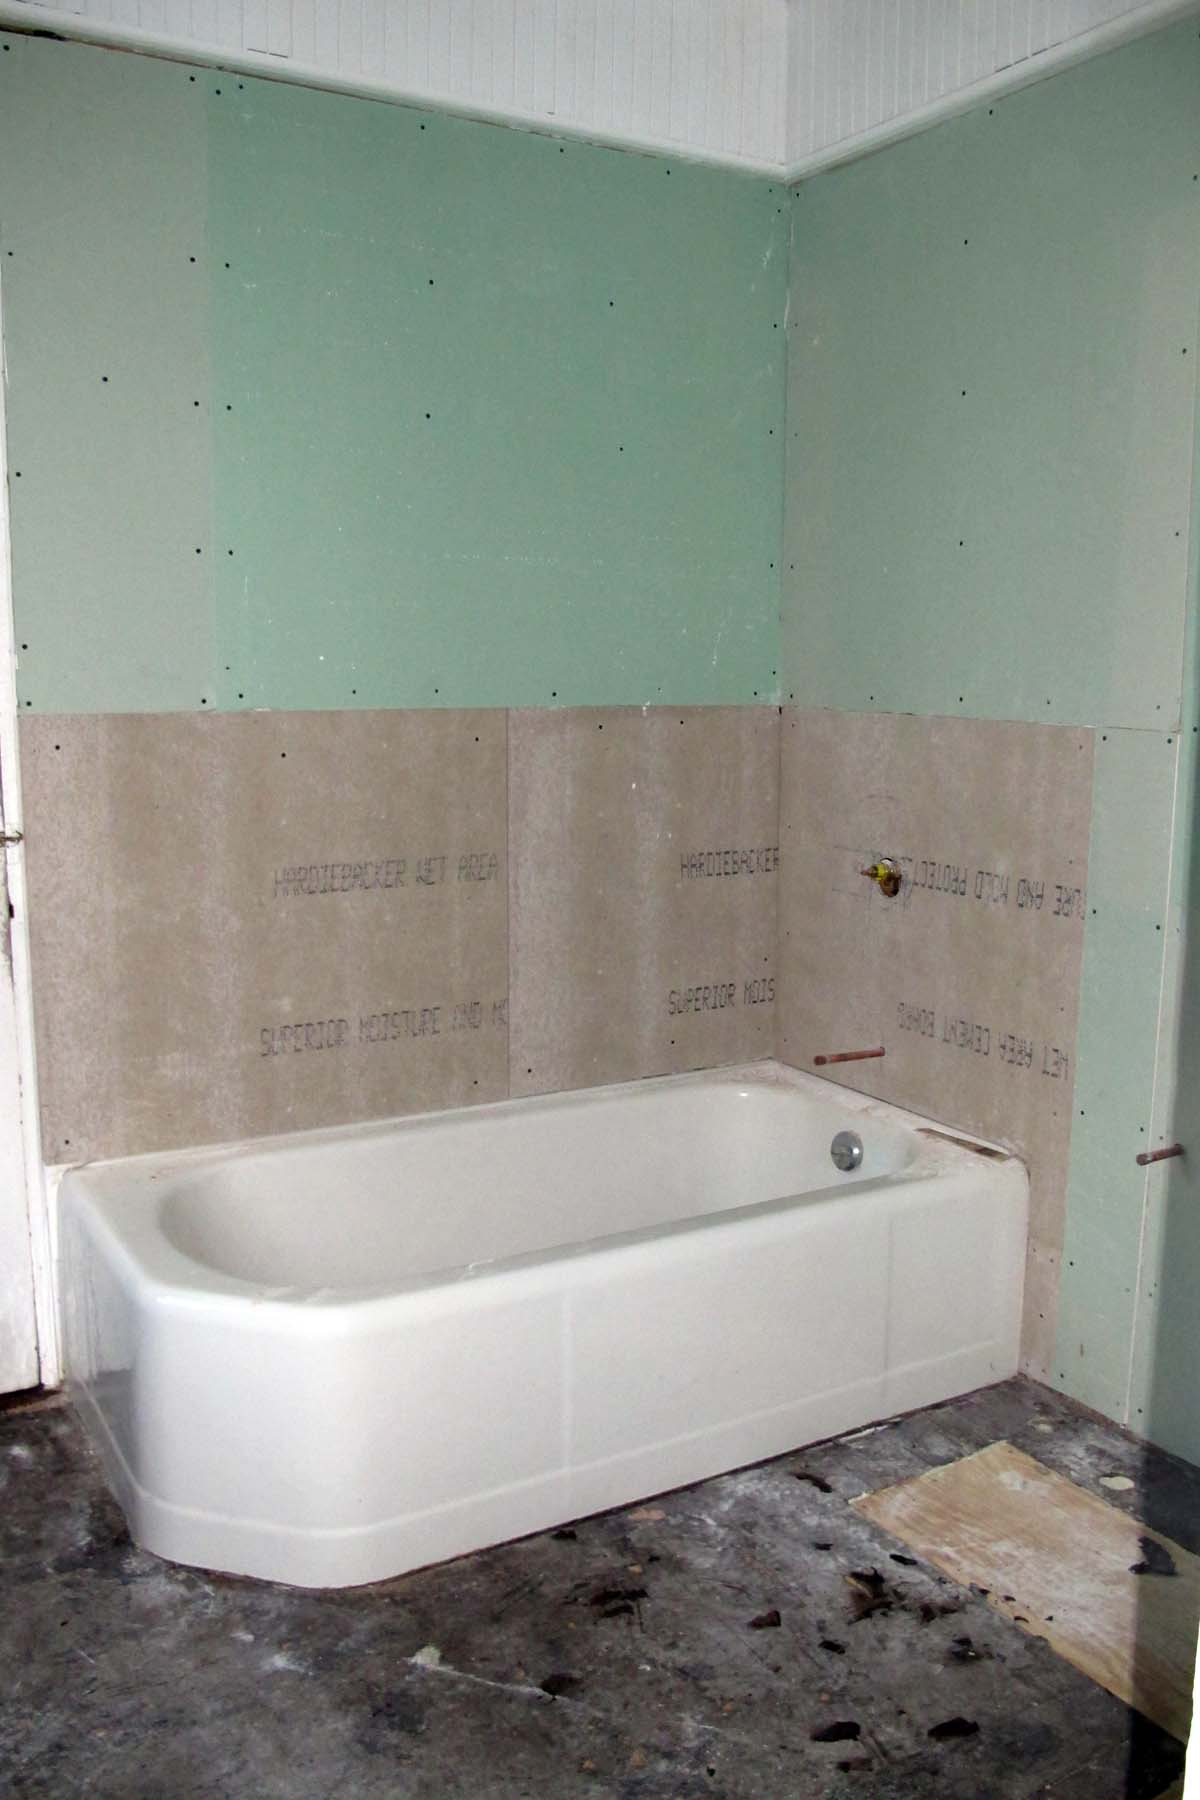 Upstairs bathroom renovation 2011 - Installing tile around bathtub ...